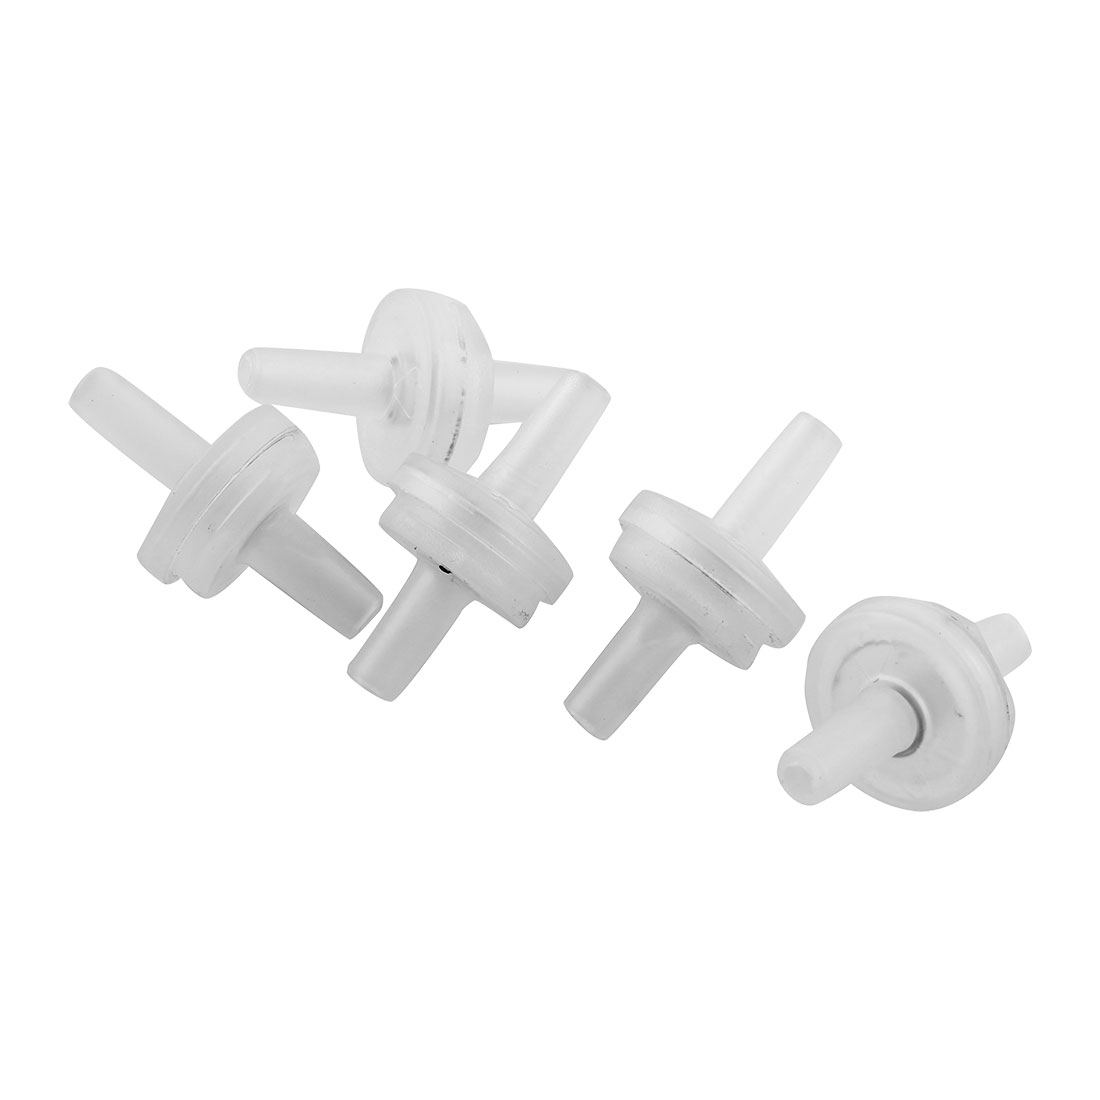 Aquarium Tank White Plastic Air Pump Outlet Check Valves 5 Pcs